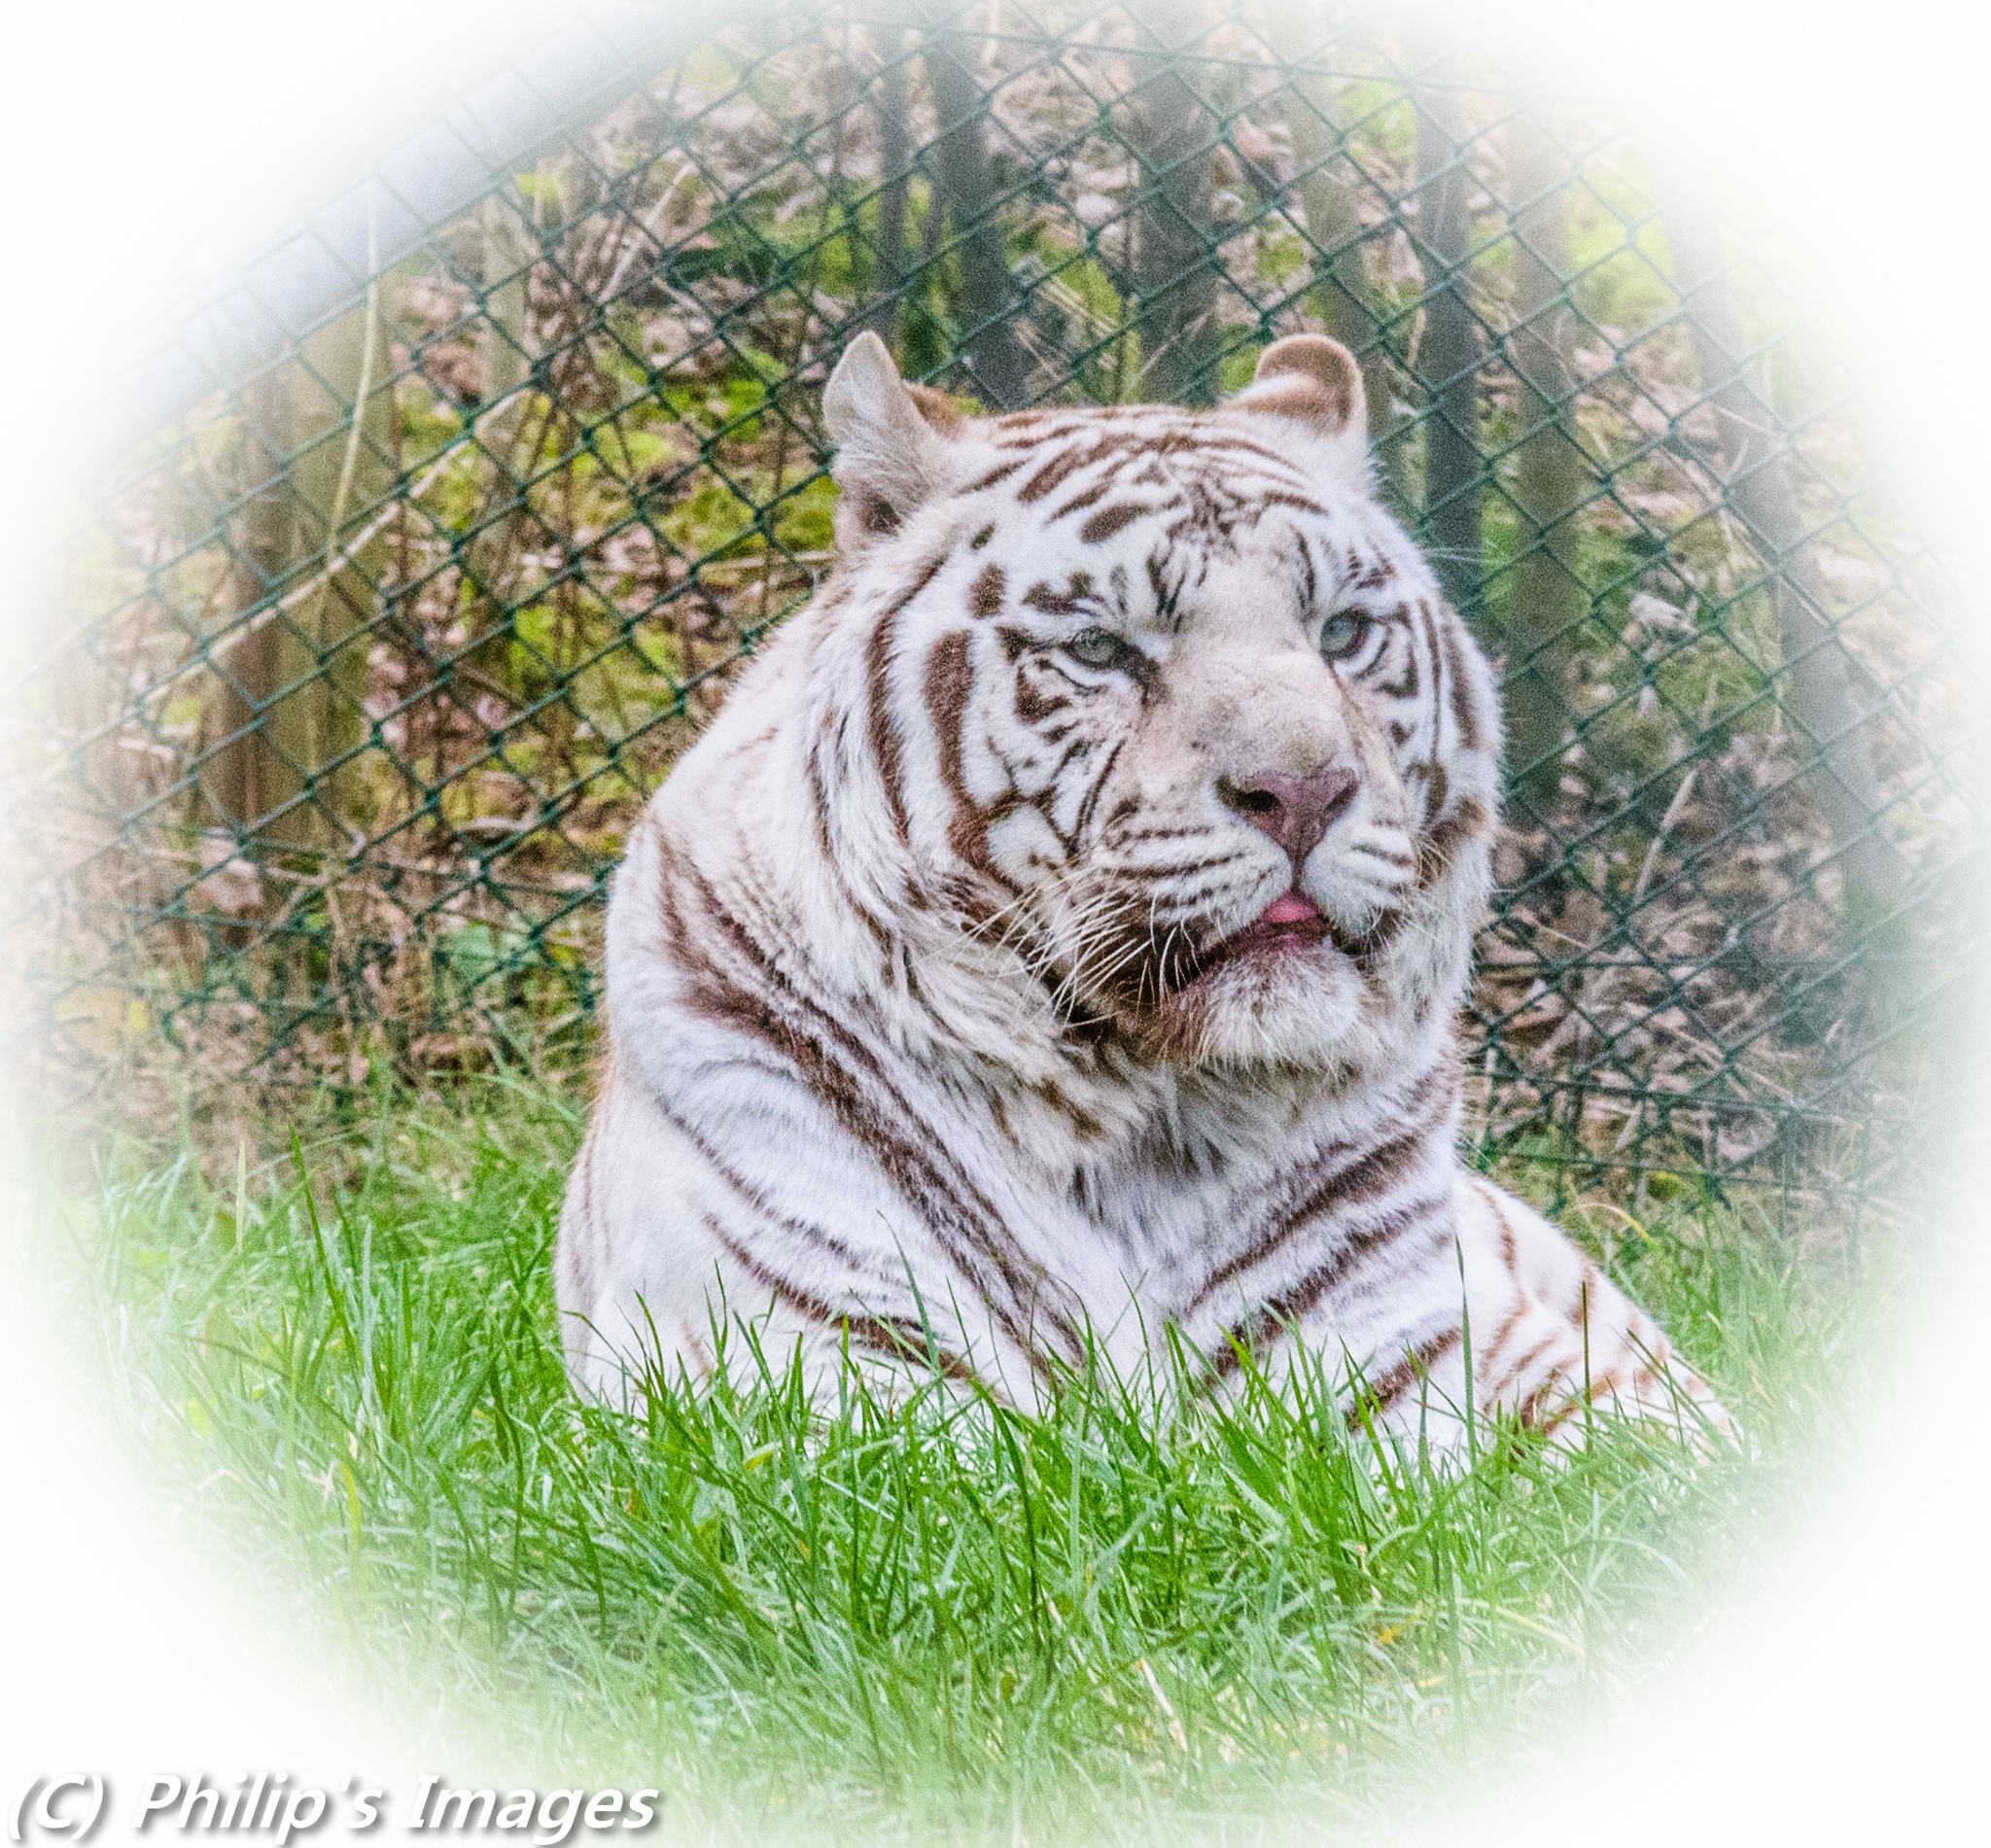 Tiger by philips images